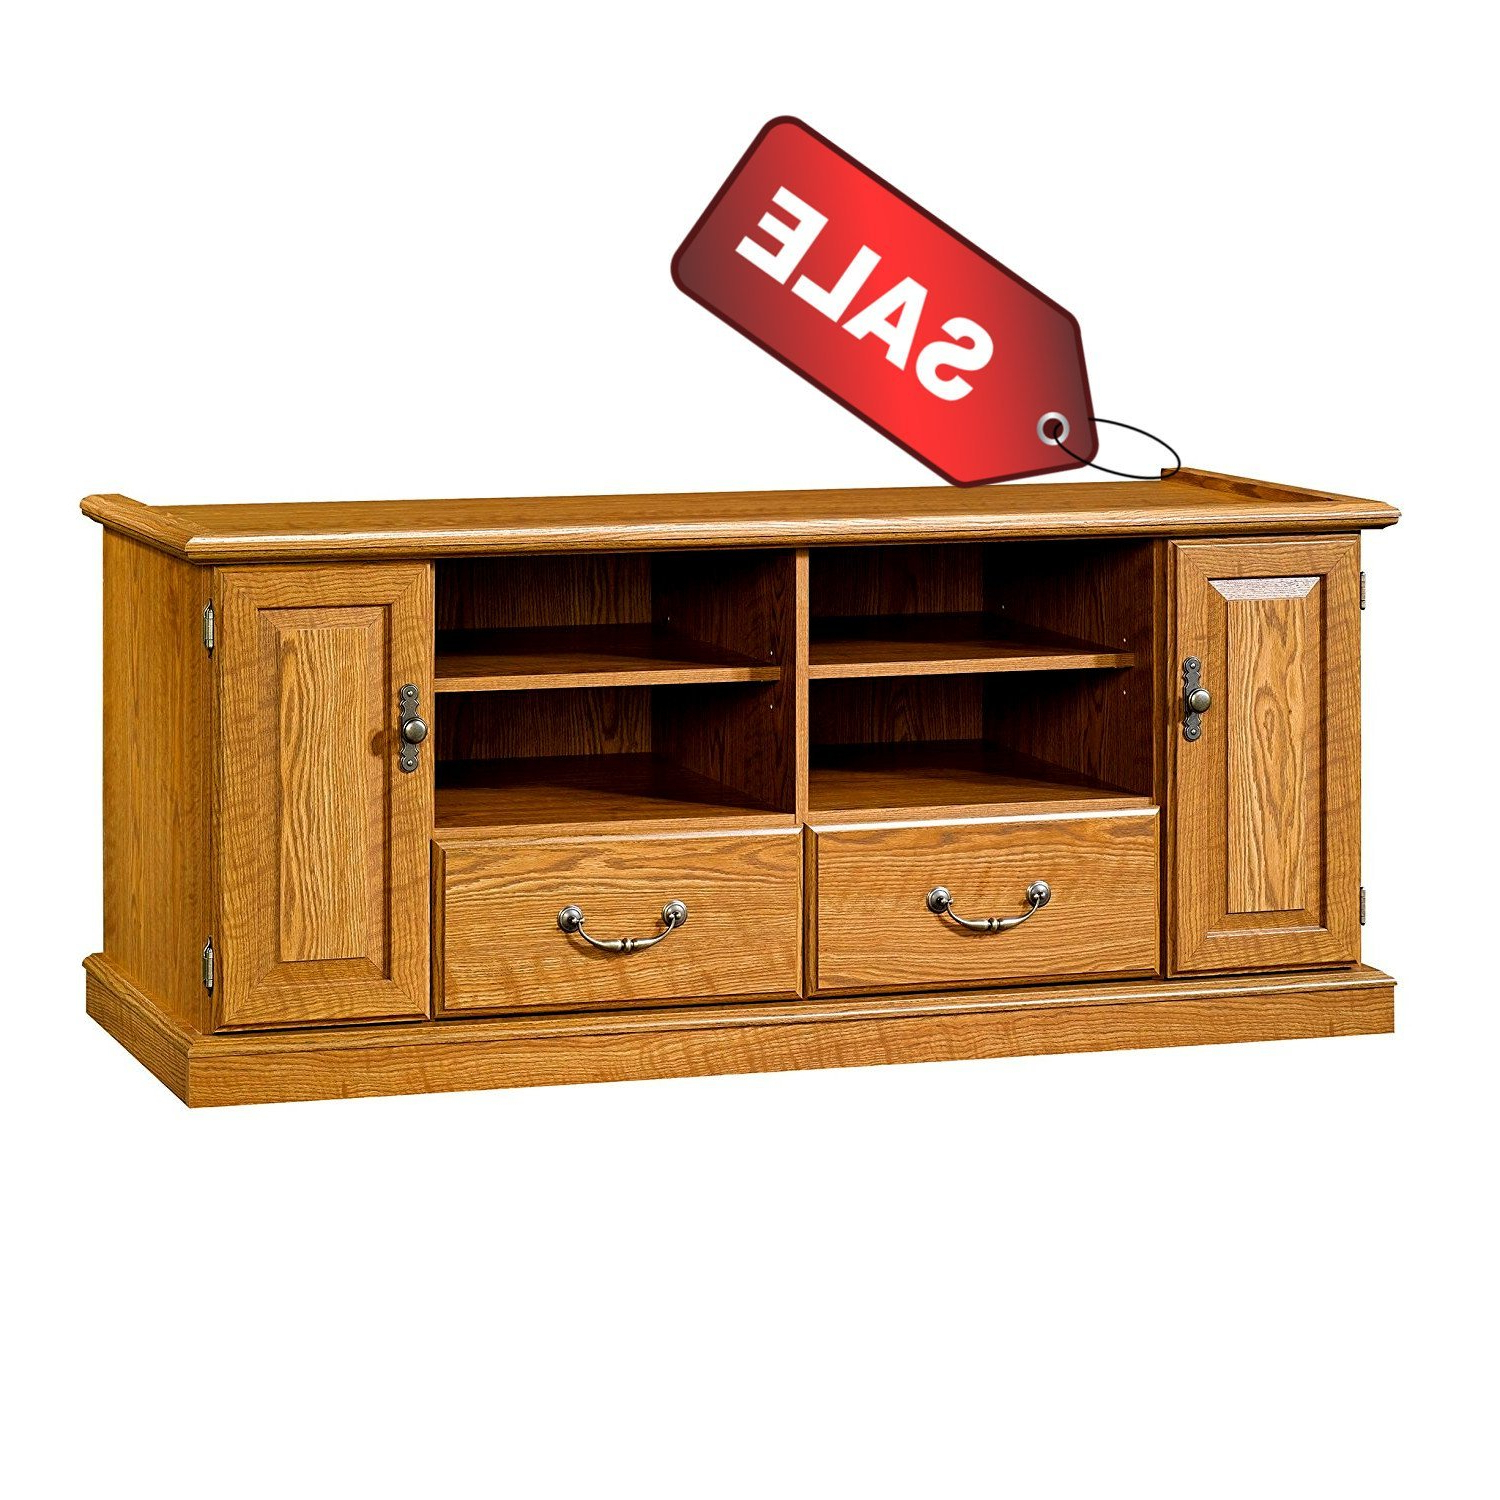 Cheap Rustic Oak Tv Cabinets, Find Rustic Oak Tv Cabinets Deals On With Regard To Well Known Oak Tv Cabinets With Doors (Gallery 20 of 20)